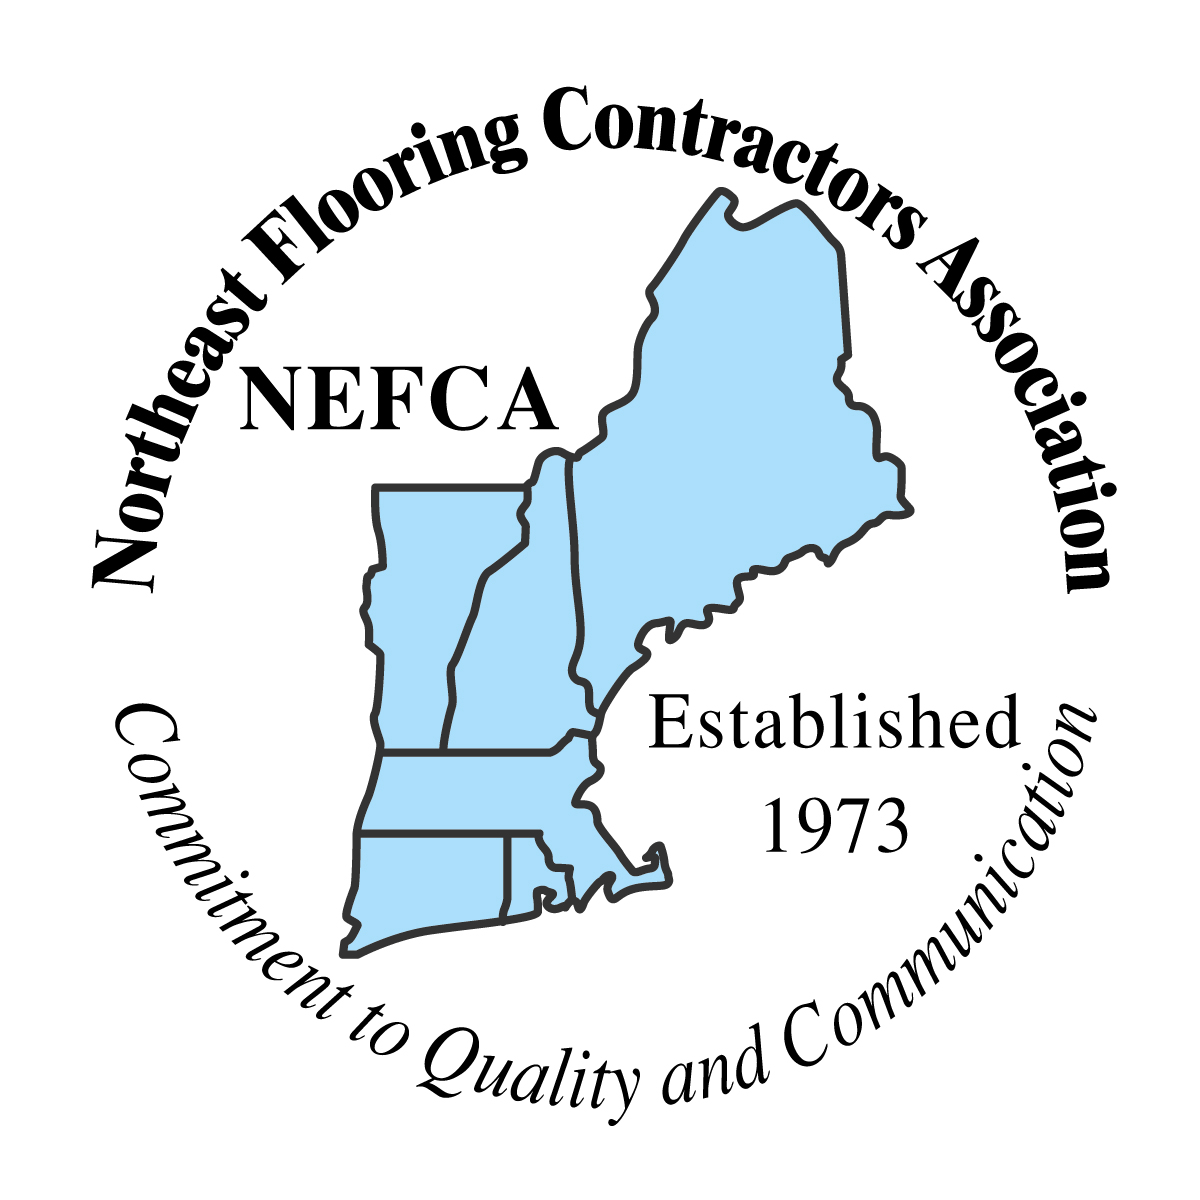 New England Flooring Contractors Association